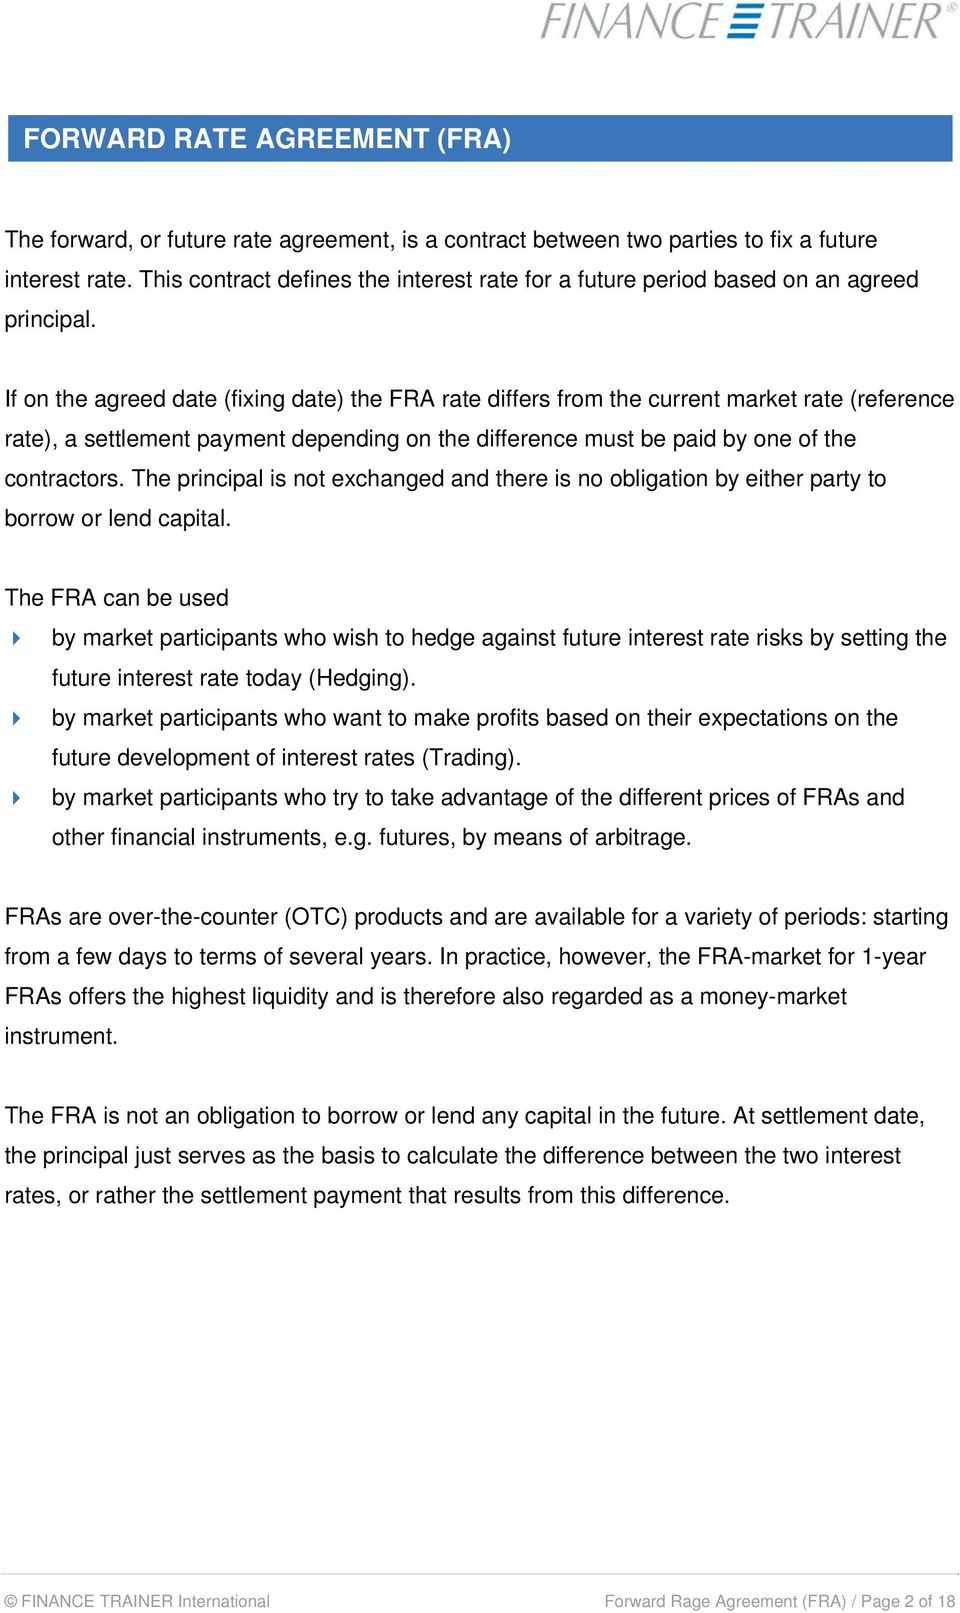 If on the agreed date (fixing date) the FRA rate differs from the current market rate (reference rate), a settlement payment depending on the difference must be paid by one of the contractors.